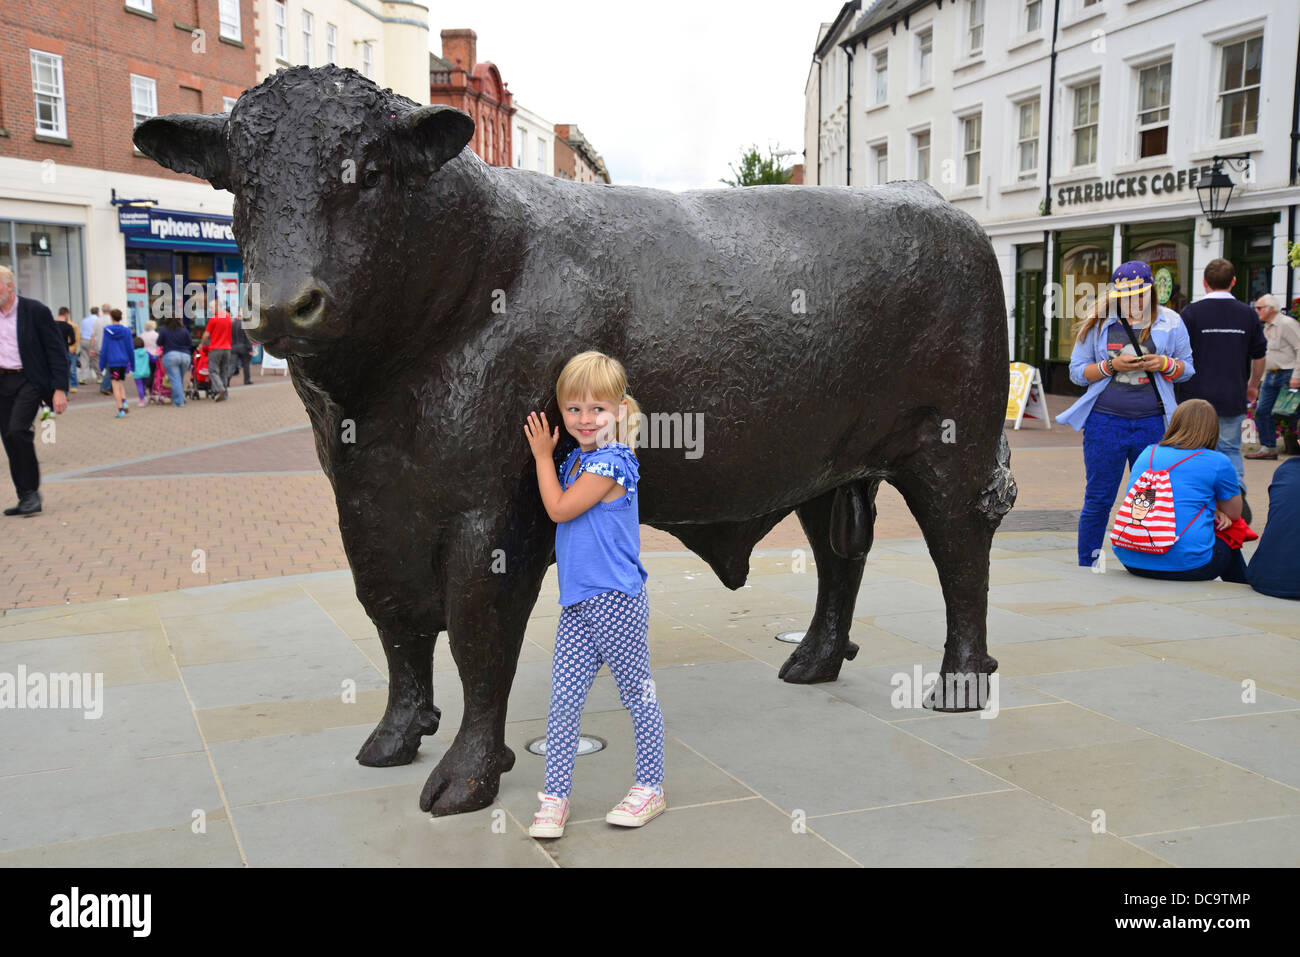 Child by bronze Hereford Bull statue, High Street, High Town, Hereford, Herefordshire, England, United Kingdom - Stock Image